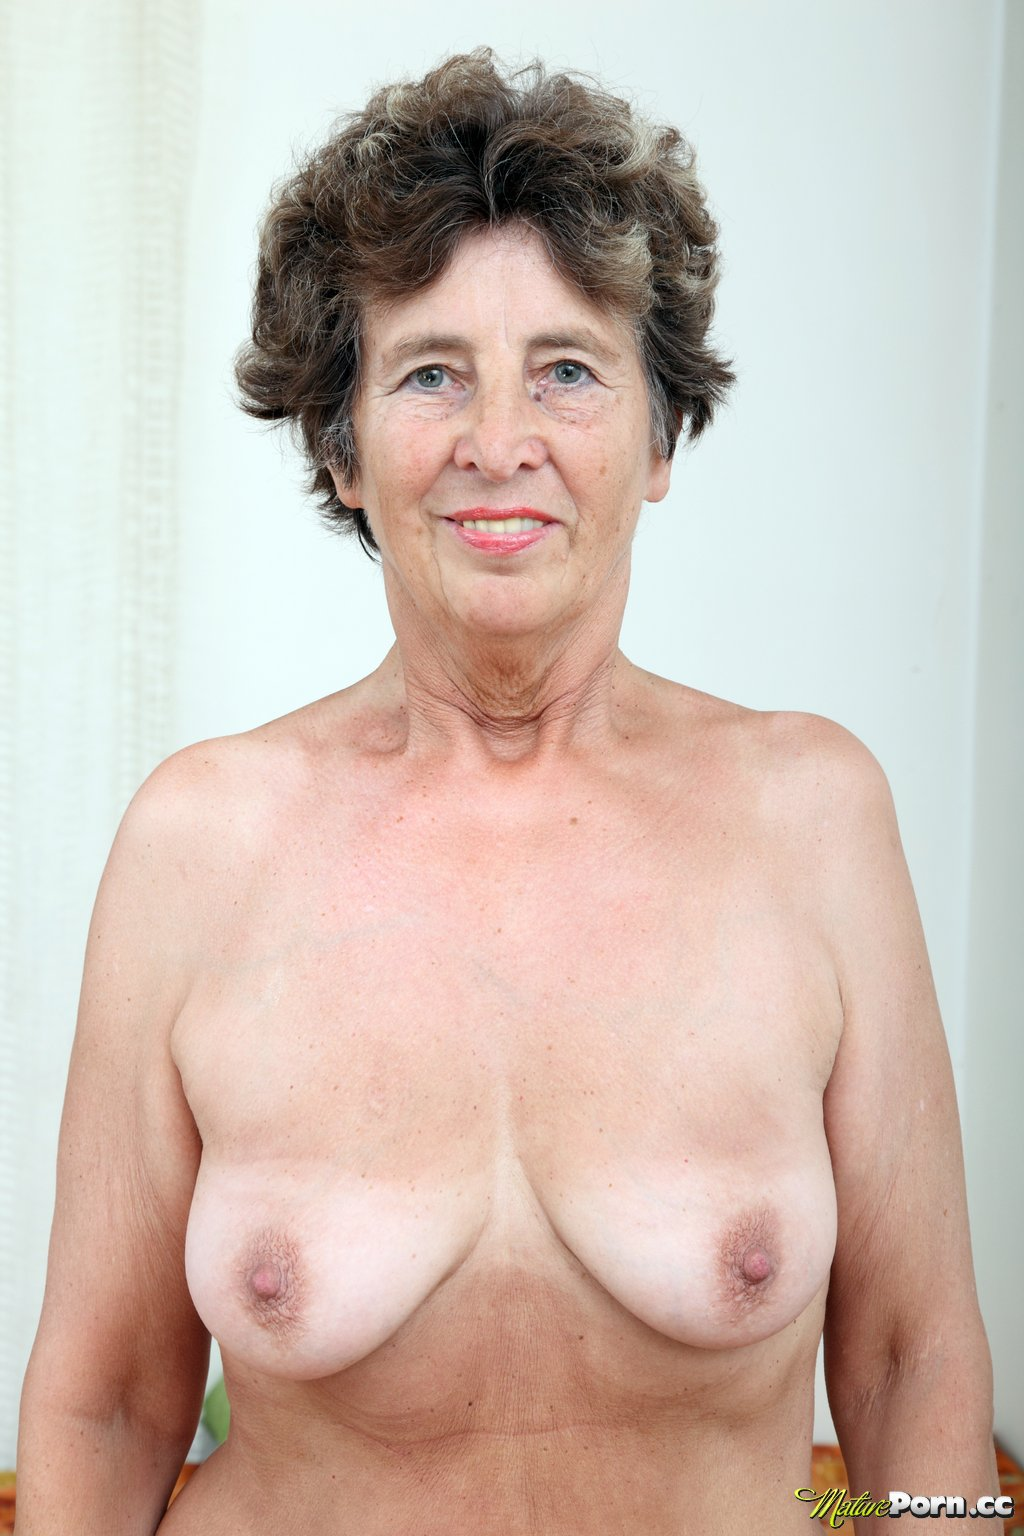 old grannies nude photos free